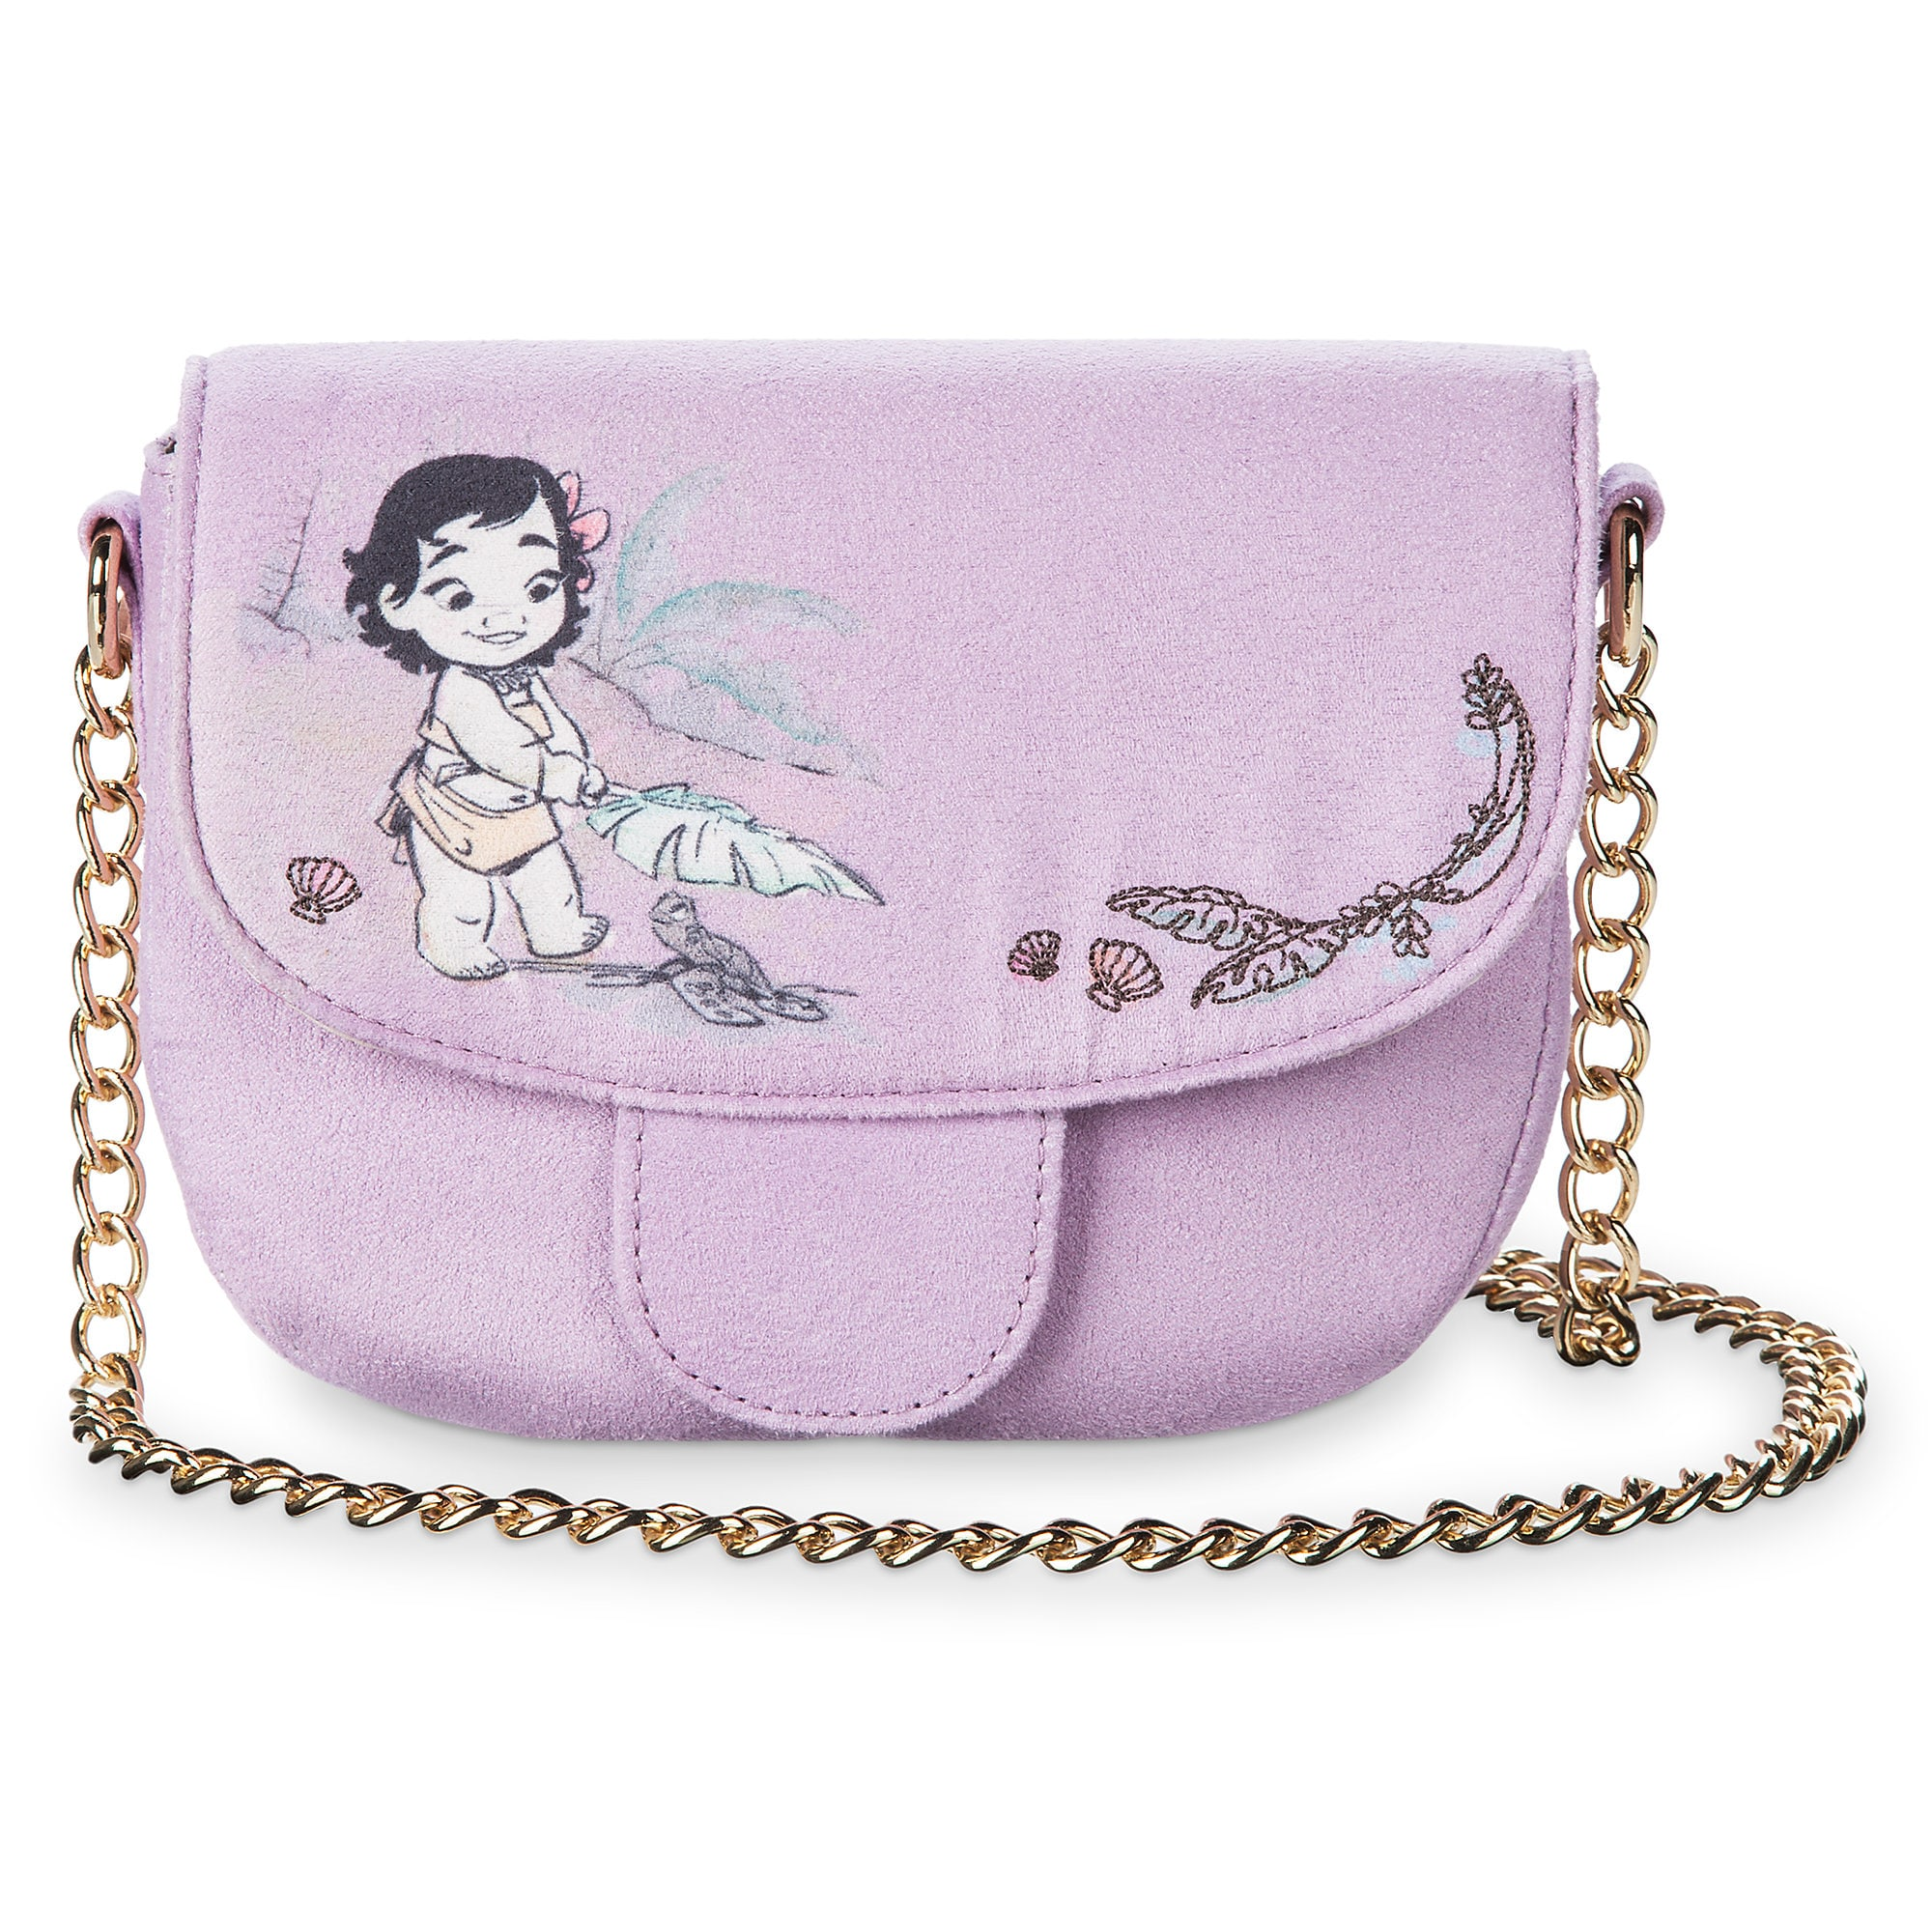 Moana Disney Animators' Collection Crossbody Bag